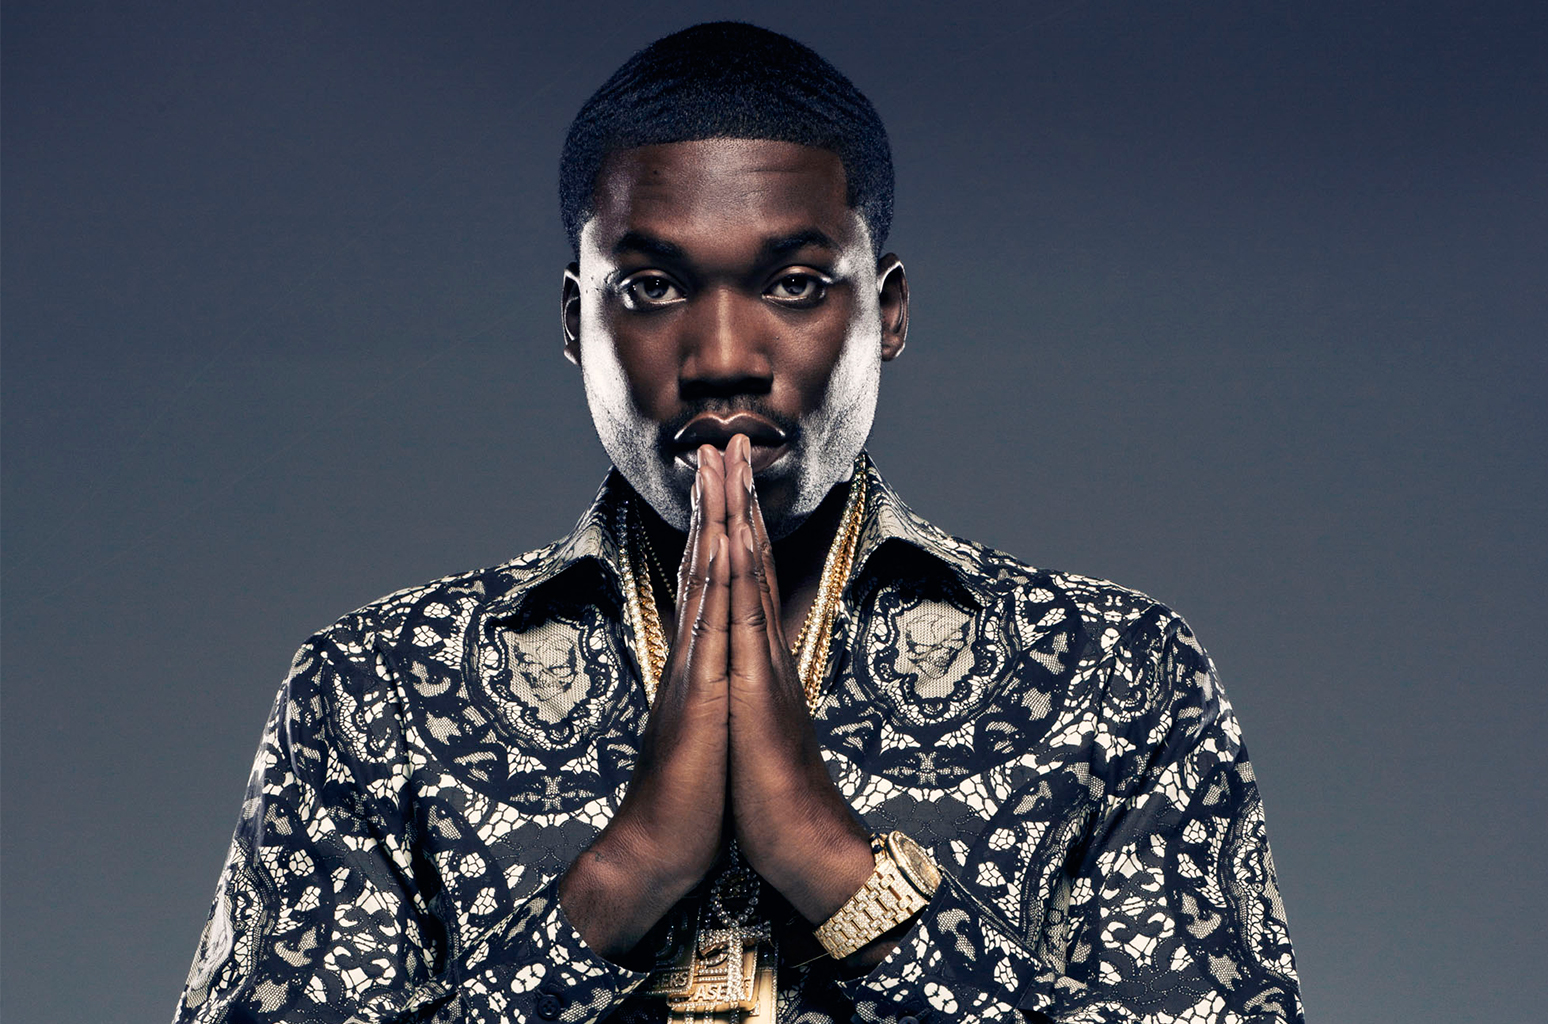 Meek-Mill-press-cr-James-Dimmock-2016-billboard-1548.jpg